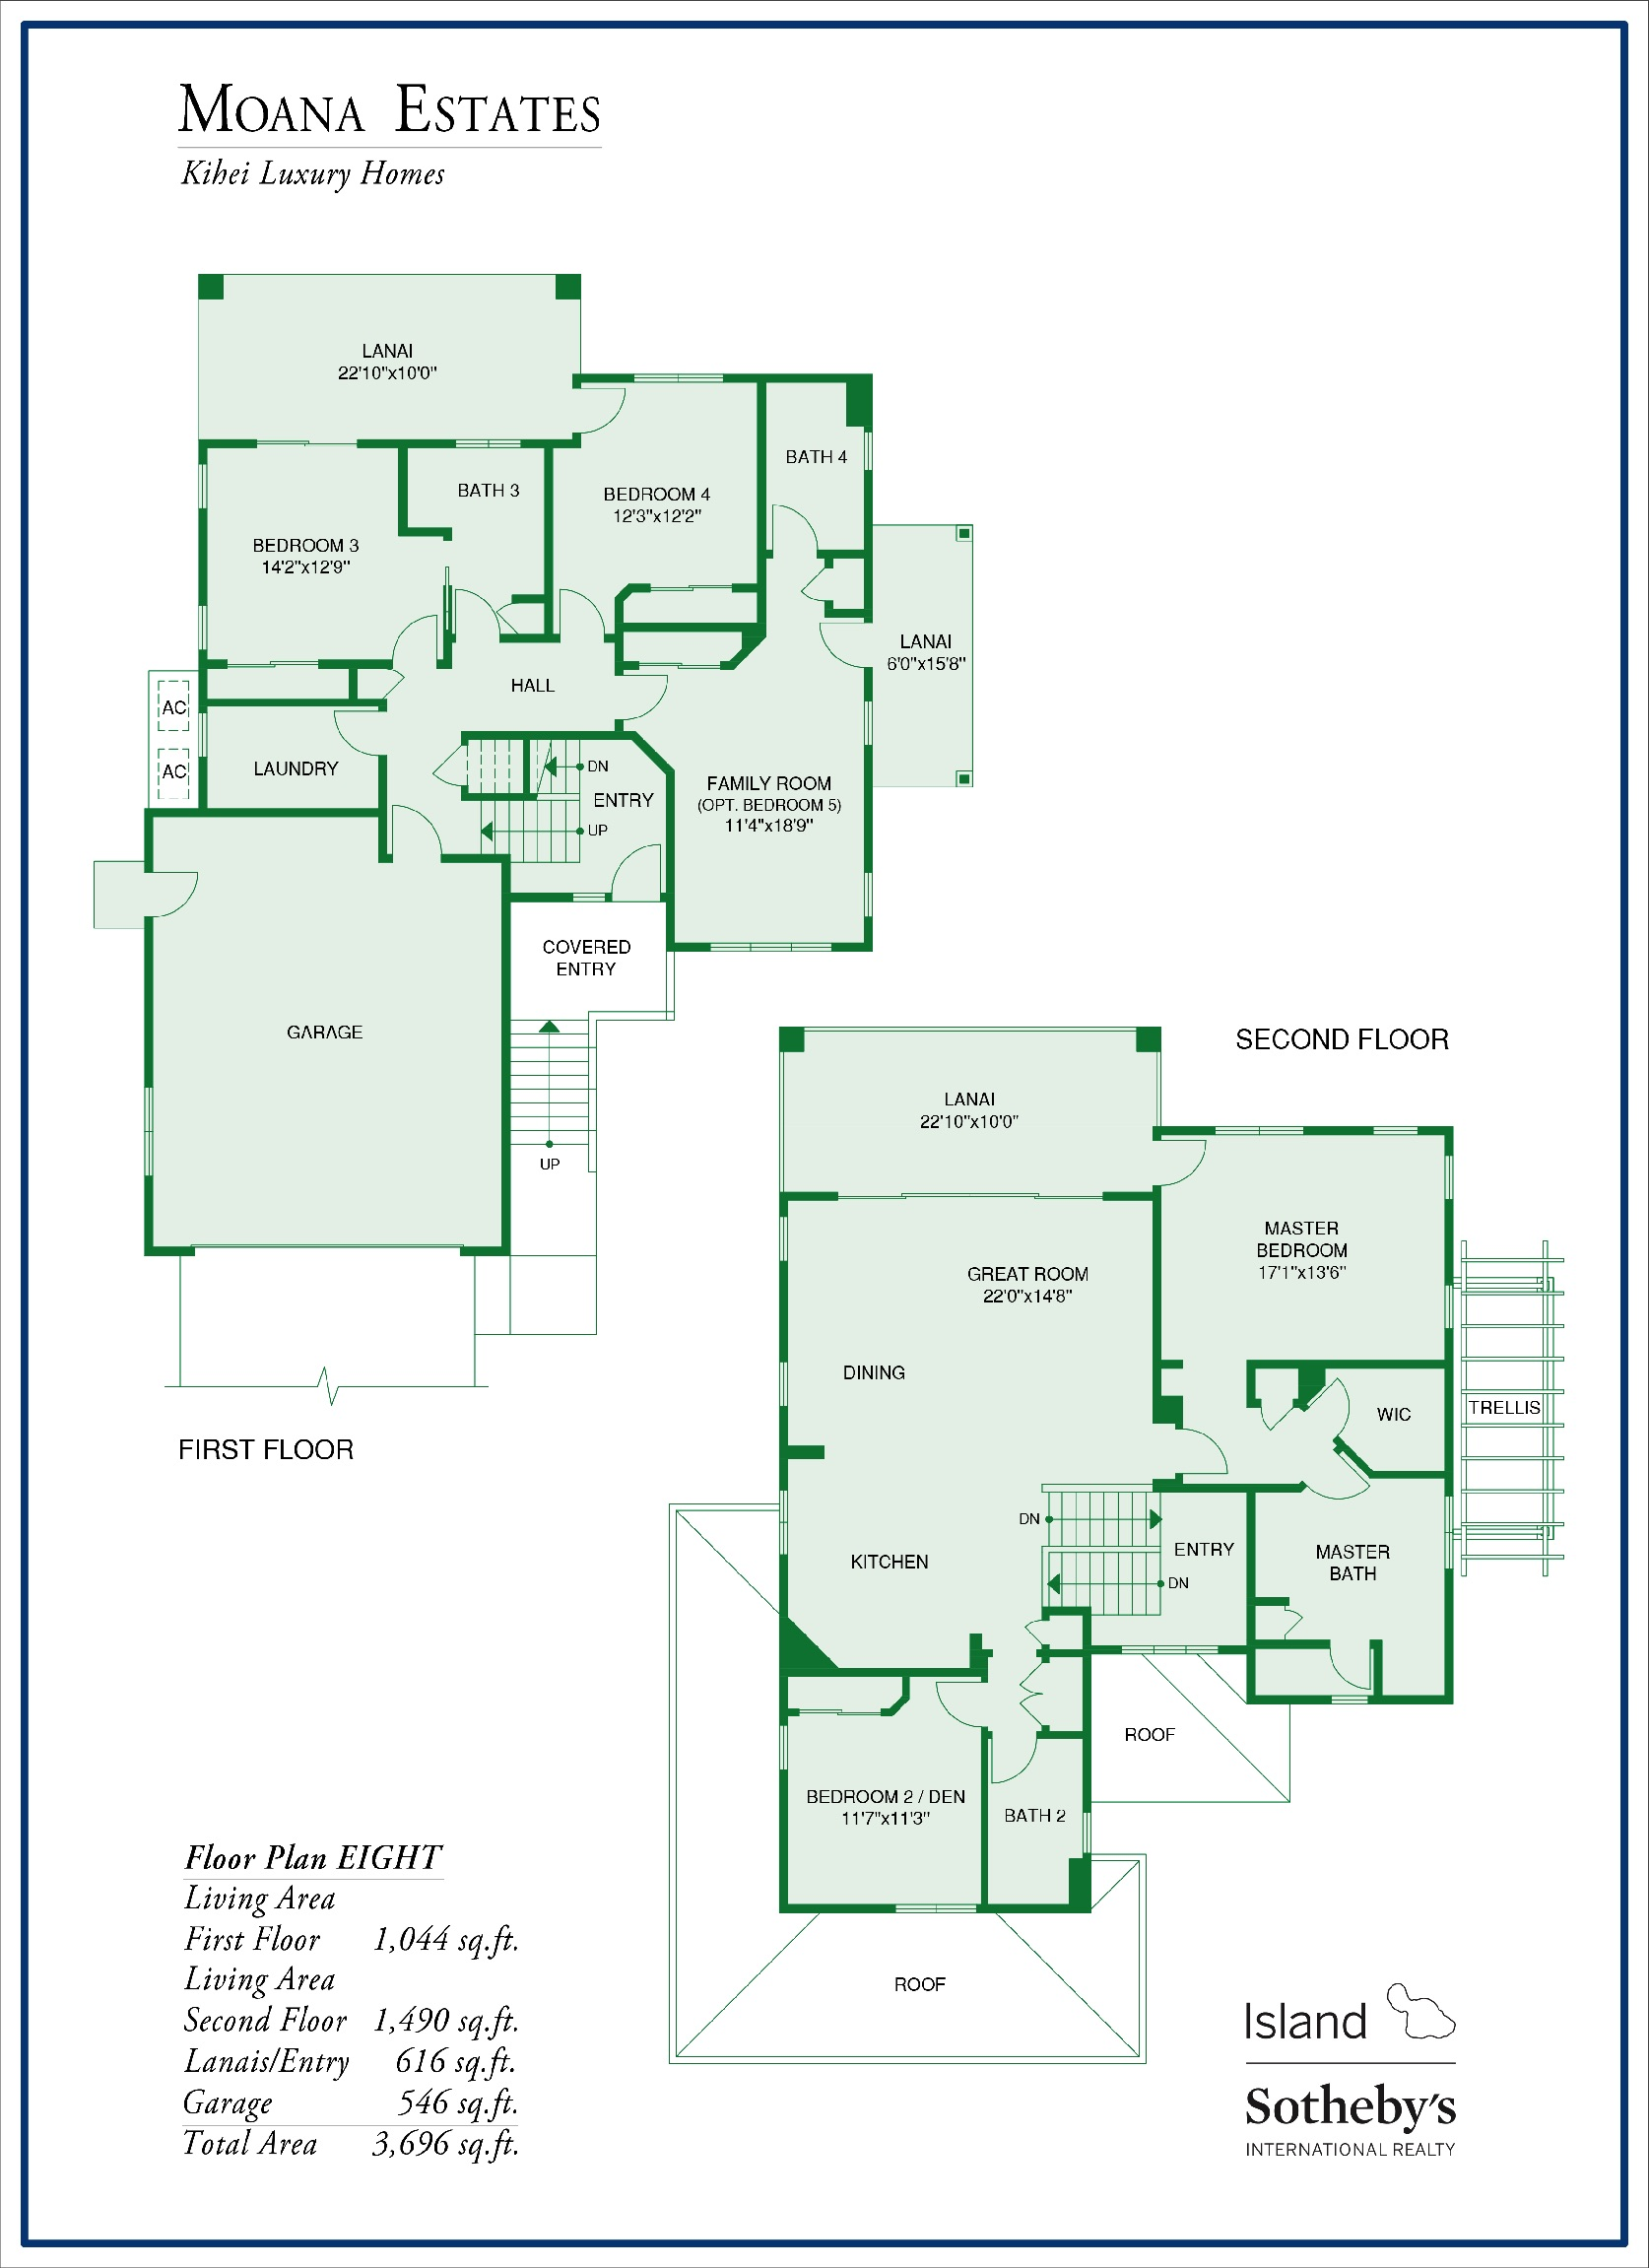 Moana Estates Floor Plan 8